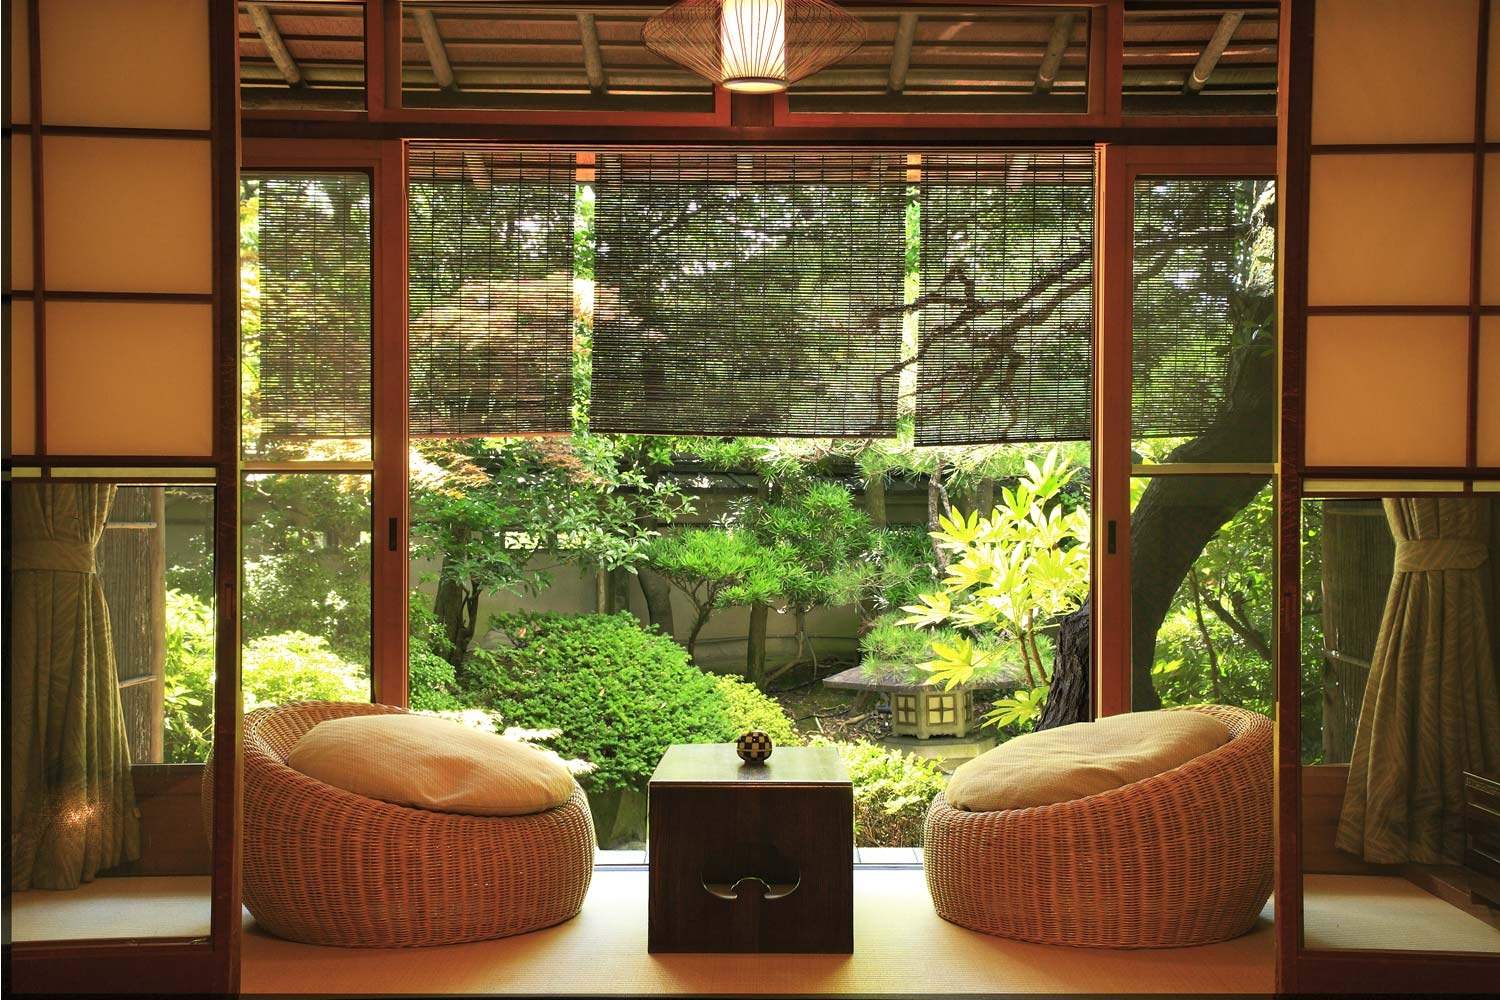 Zen garden room interior design ideas for Designs for garden rooms